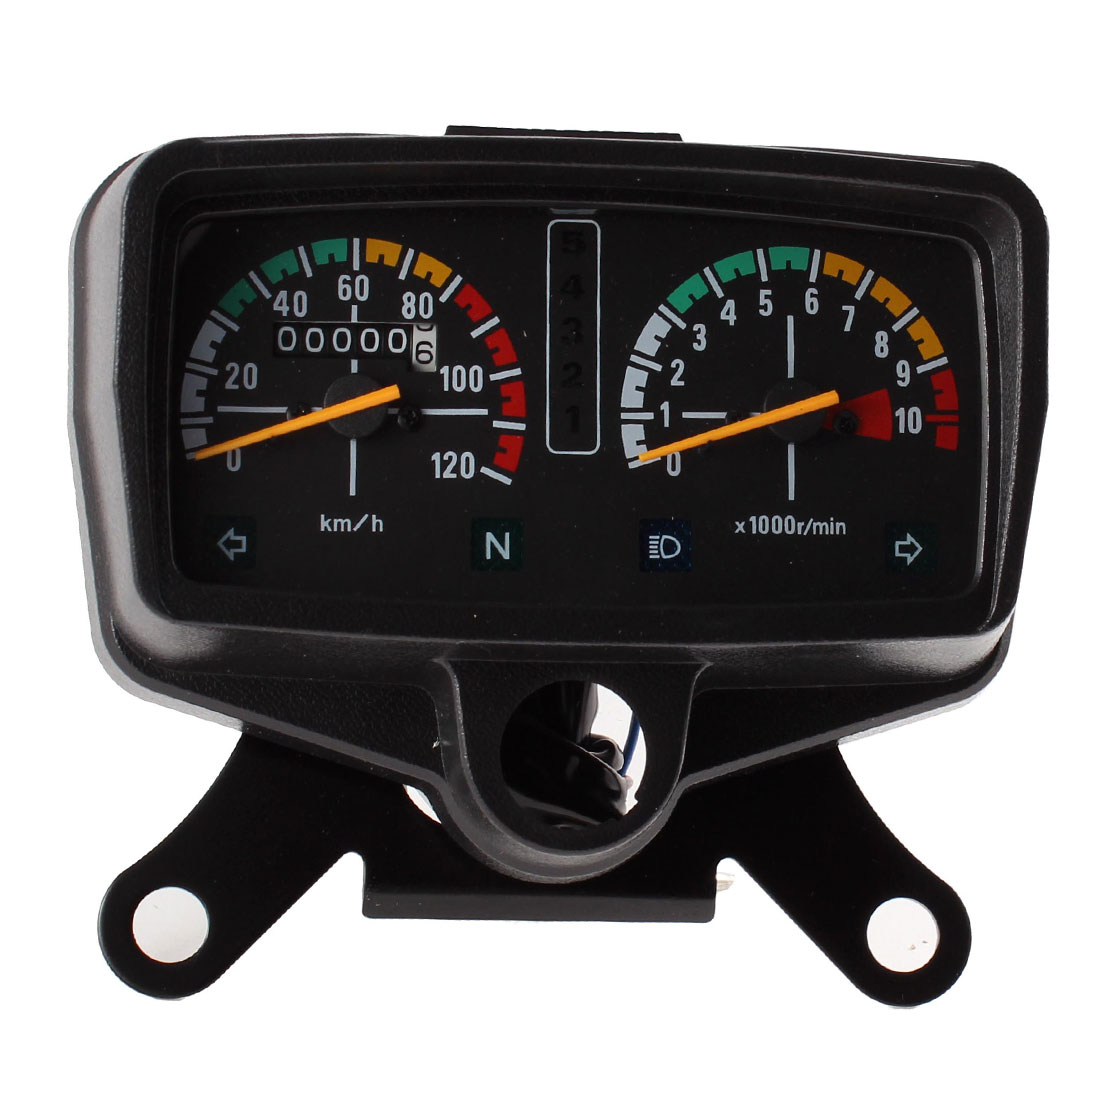 0-120km/h Analog Tachometer Odometer Speedometer Gauge for Motorcycle ZI